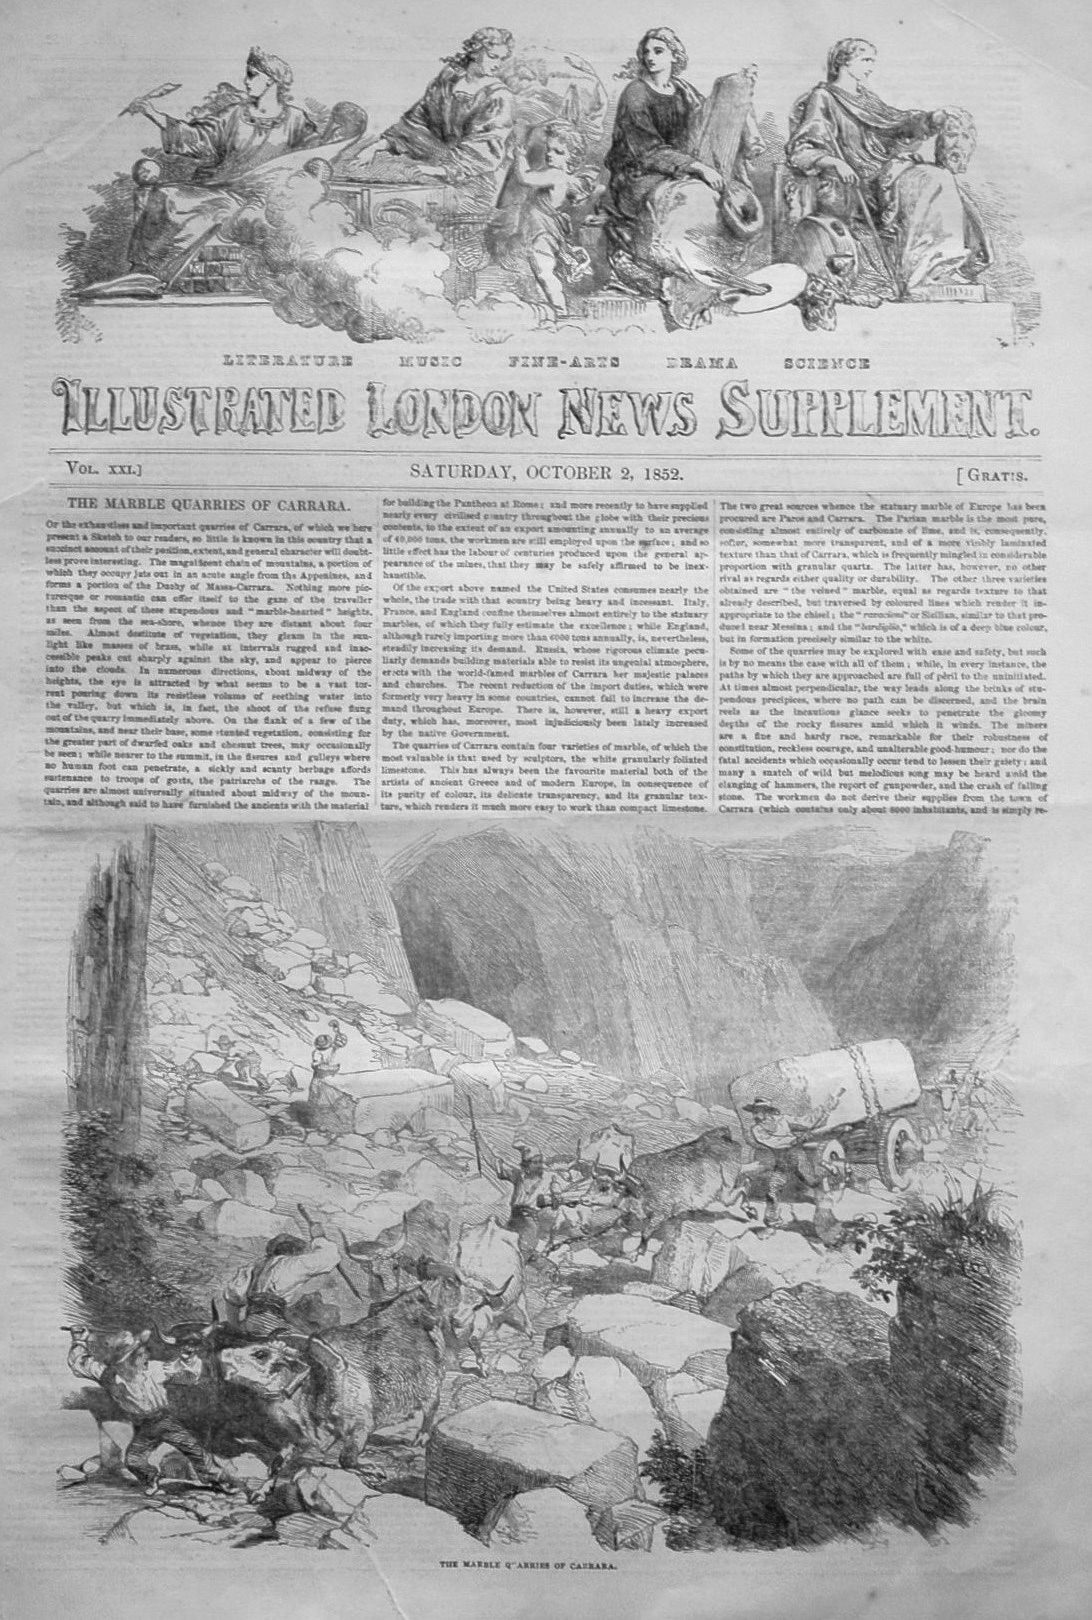 Illustrated London News (Supplement) For October 2nd, 1852.